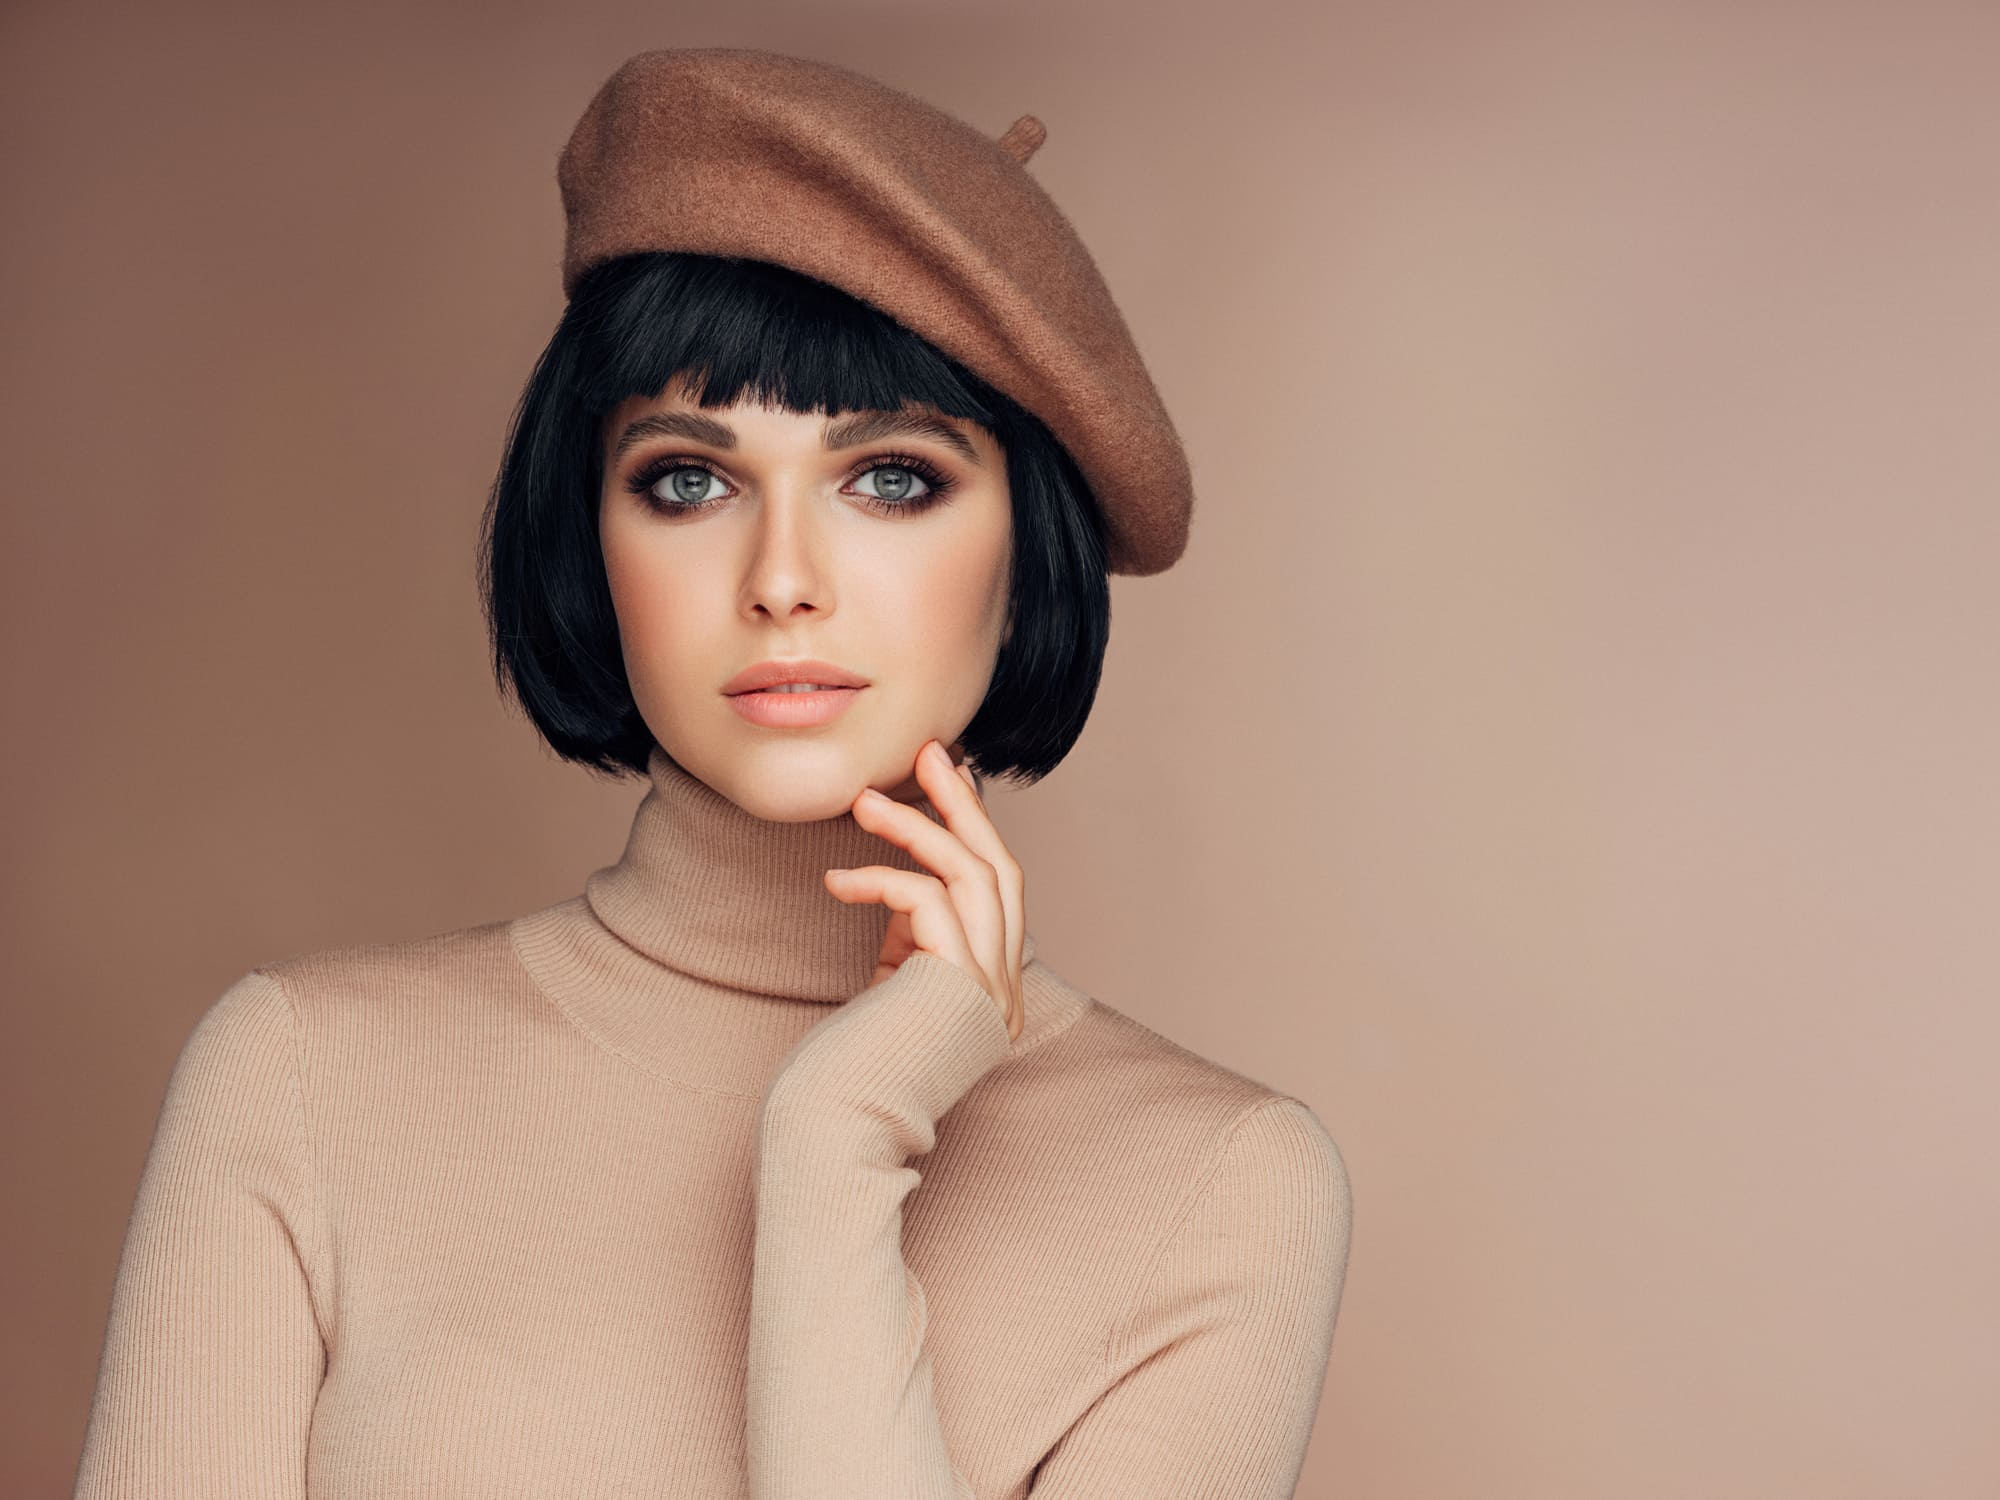 All About French Bobs — How to Style and Maintain the Trendy Look